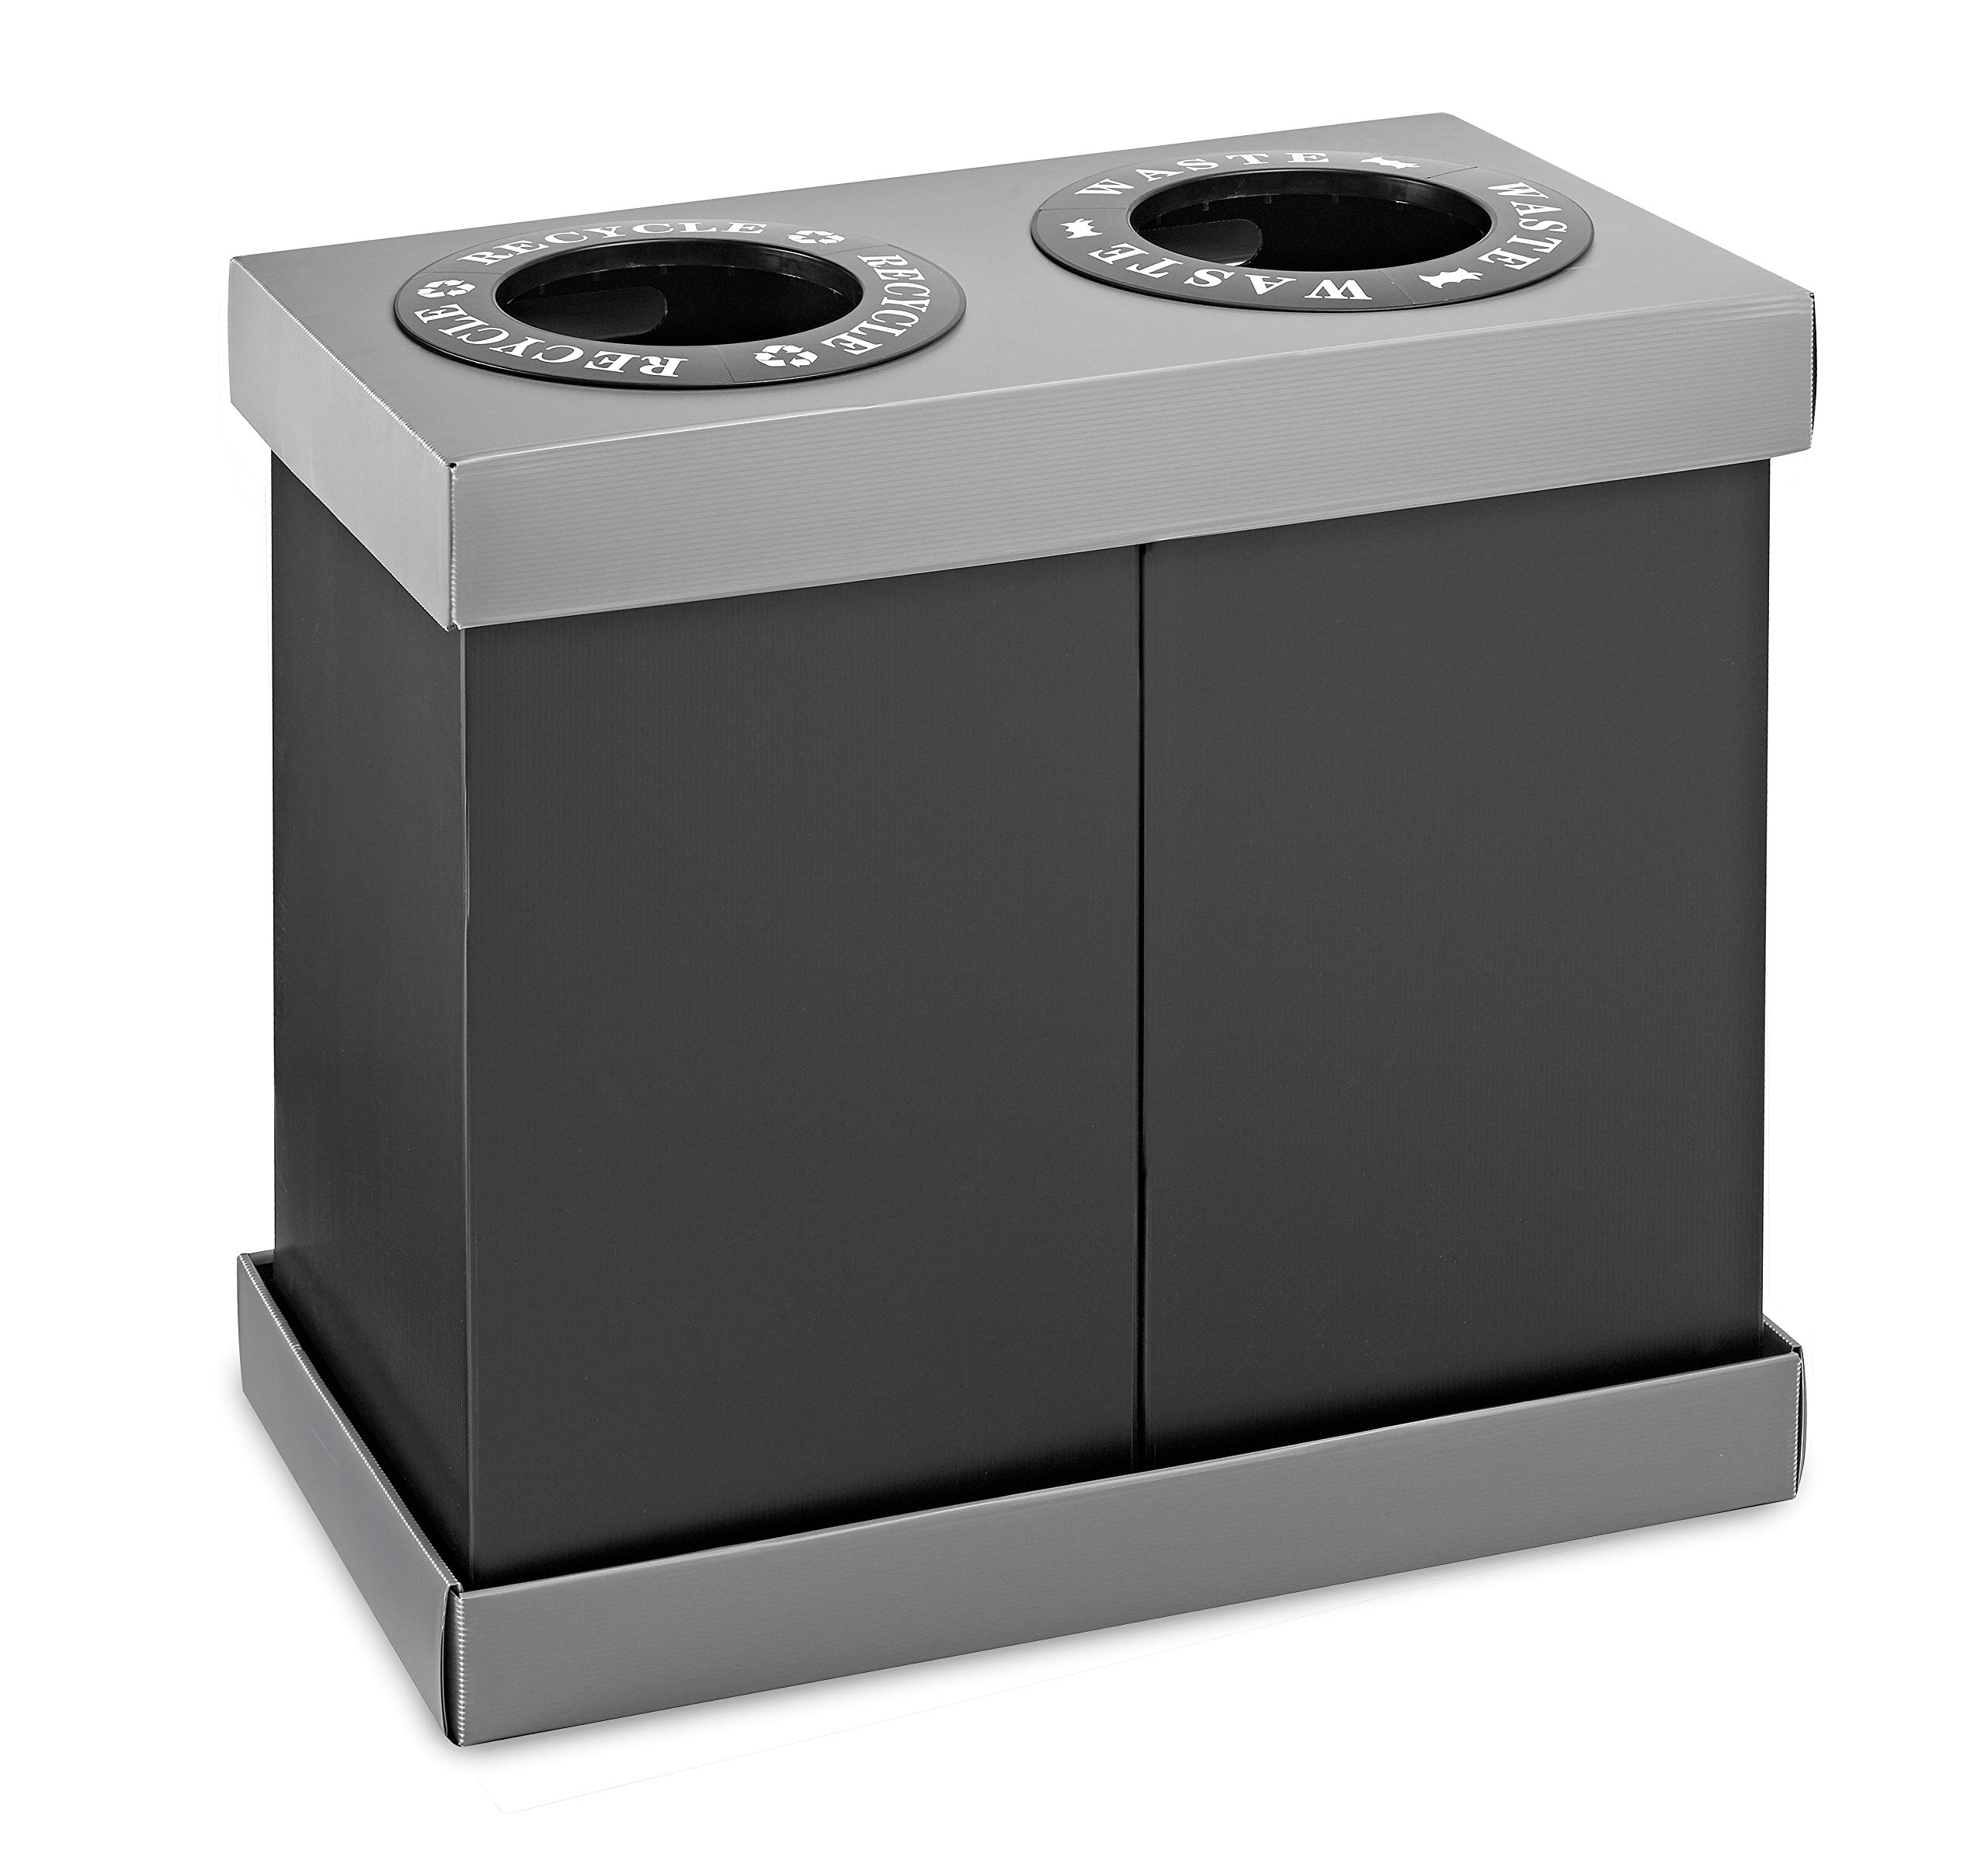 Alpine Industries Recycling Center 28 Gallons - Durable Plastic Waste/Trash Organizer Ideal for Kitchen Office Hospital Commercial Use (2 Bins)